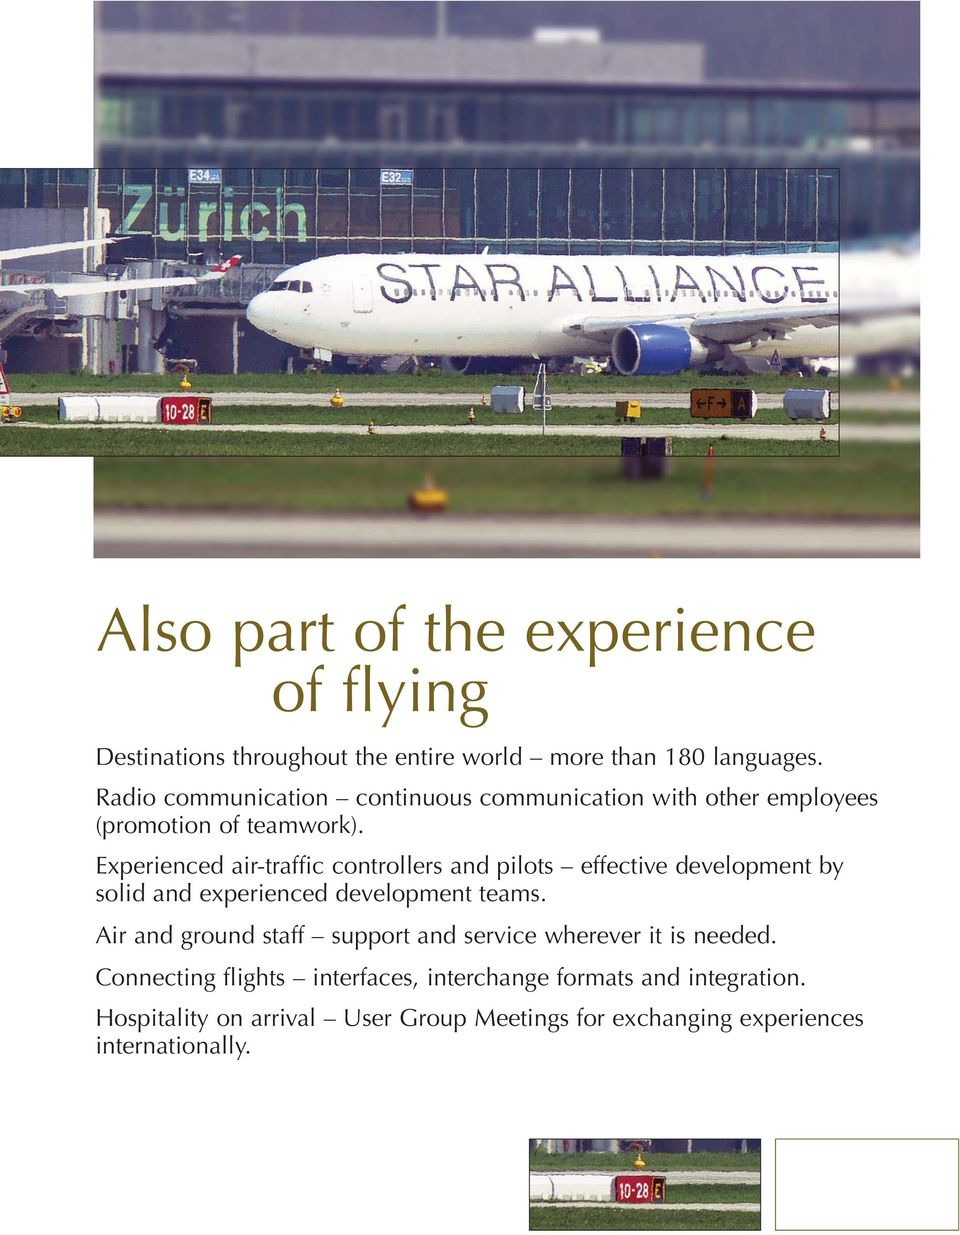 Experienced air-traffic controllers and pilots effective development by solid and experienced development teams.